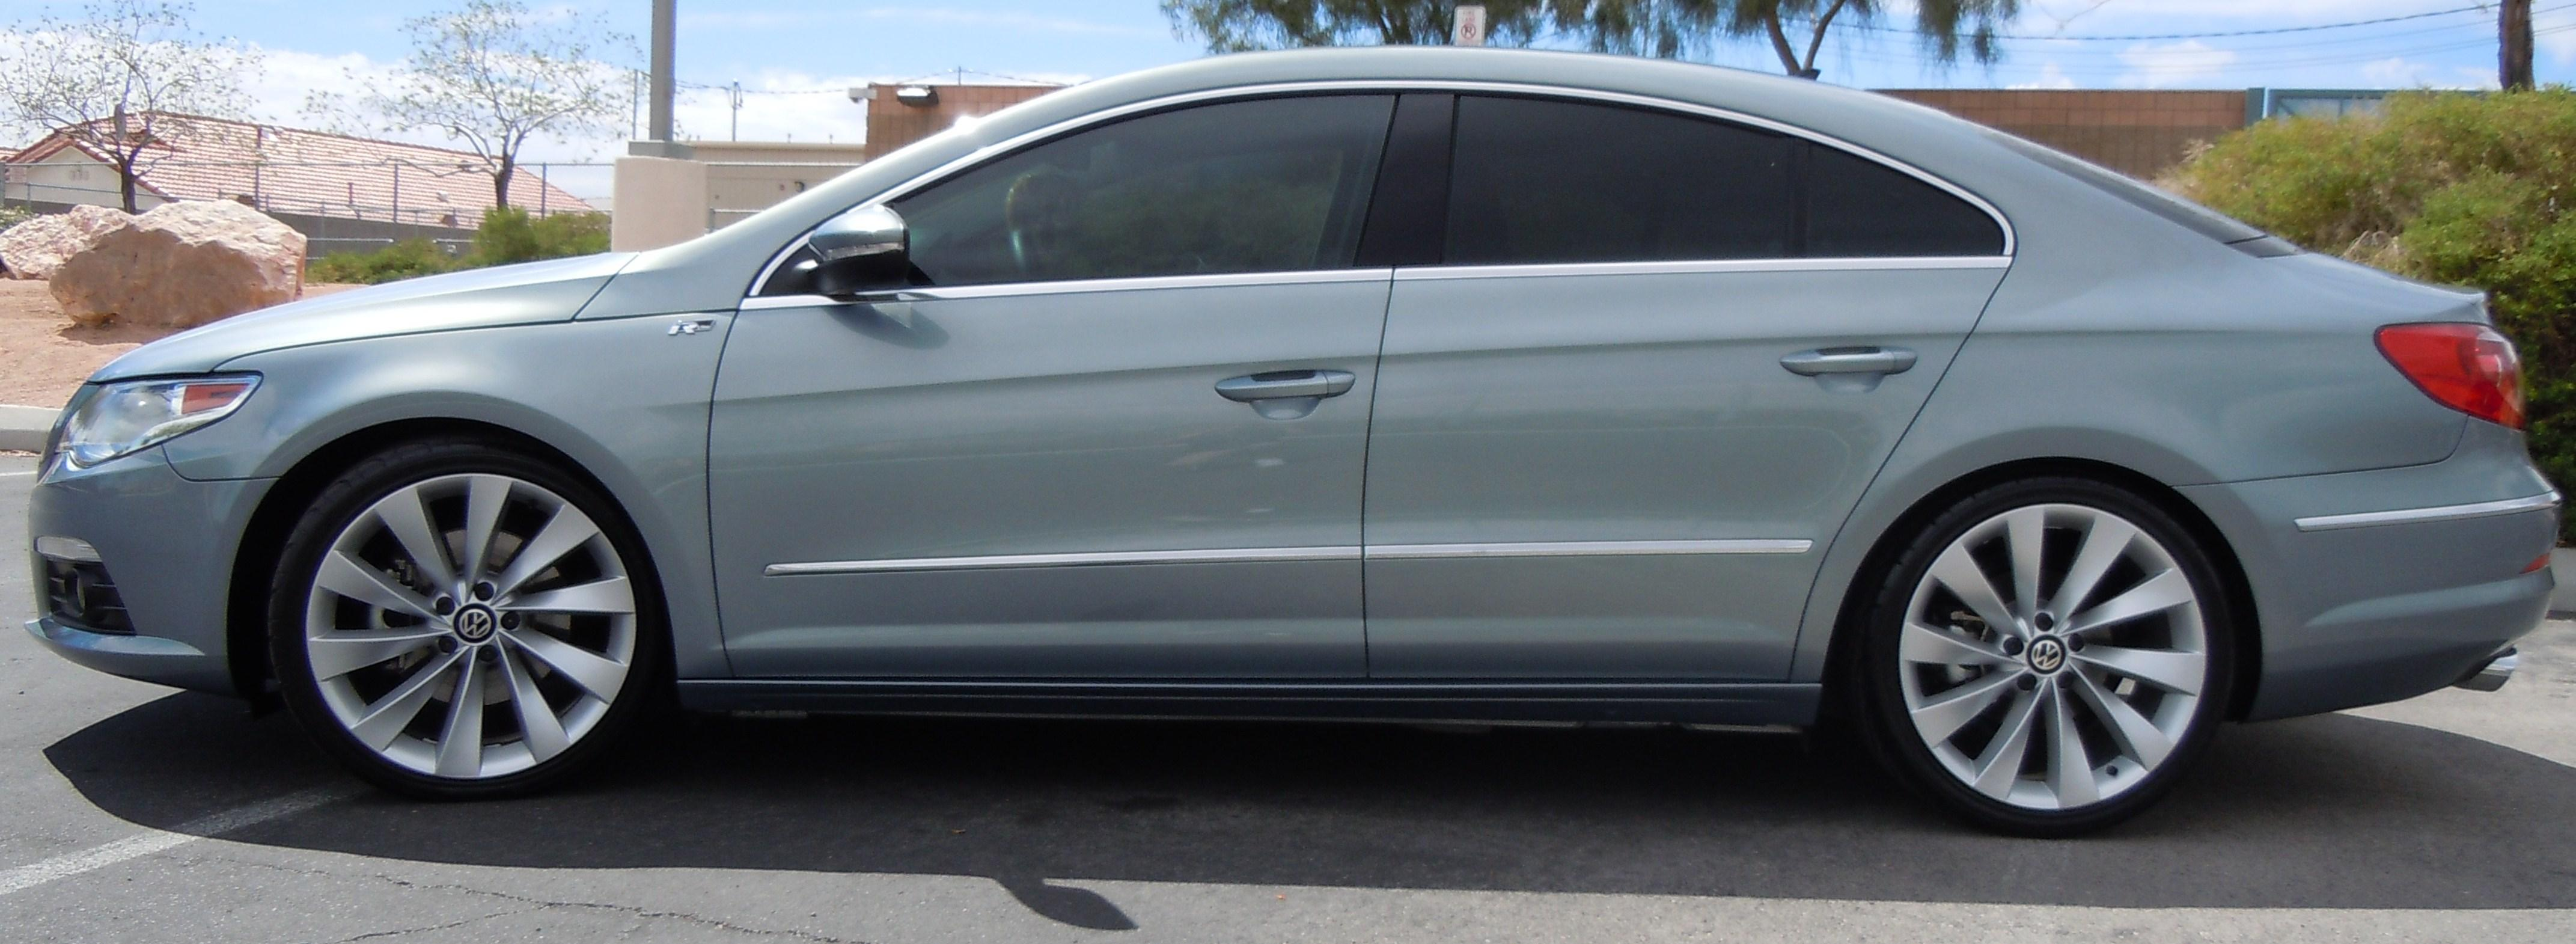 volkswagen cc l mmm to be lsoon that pin s hot o c vw e babe t